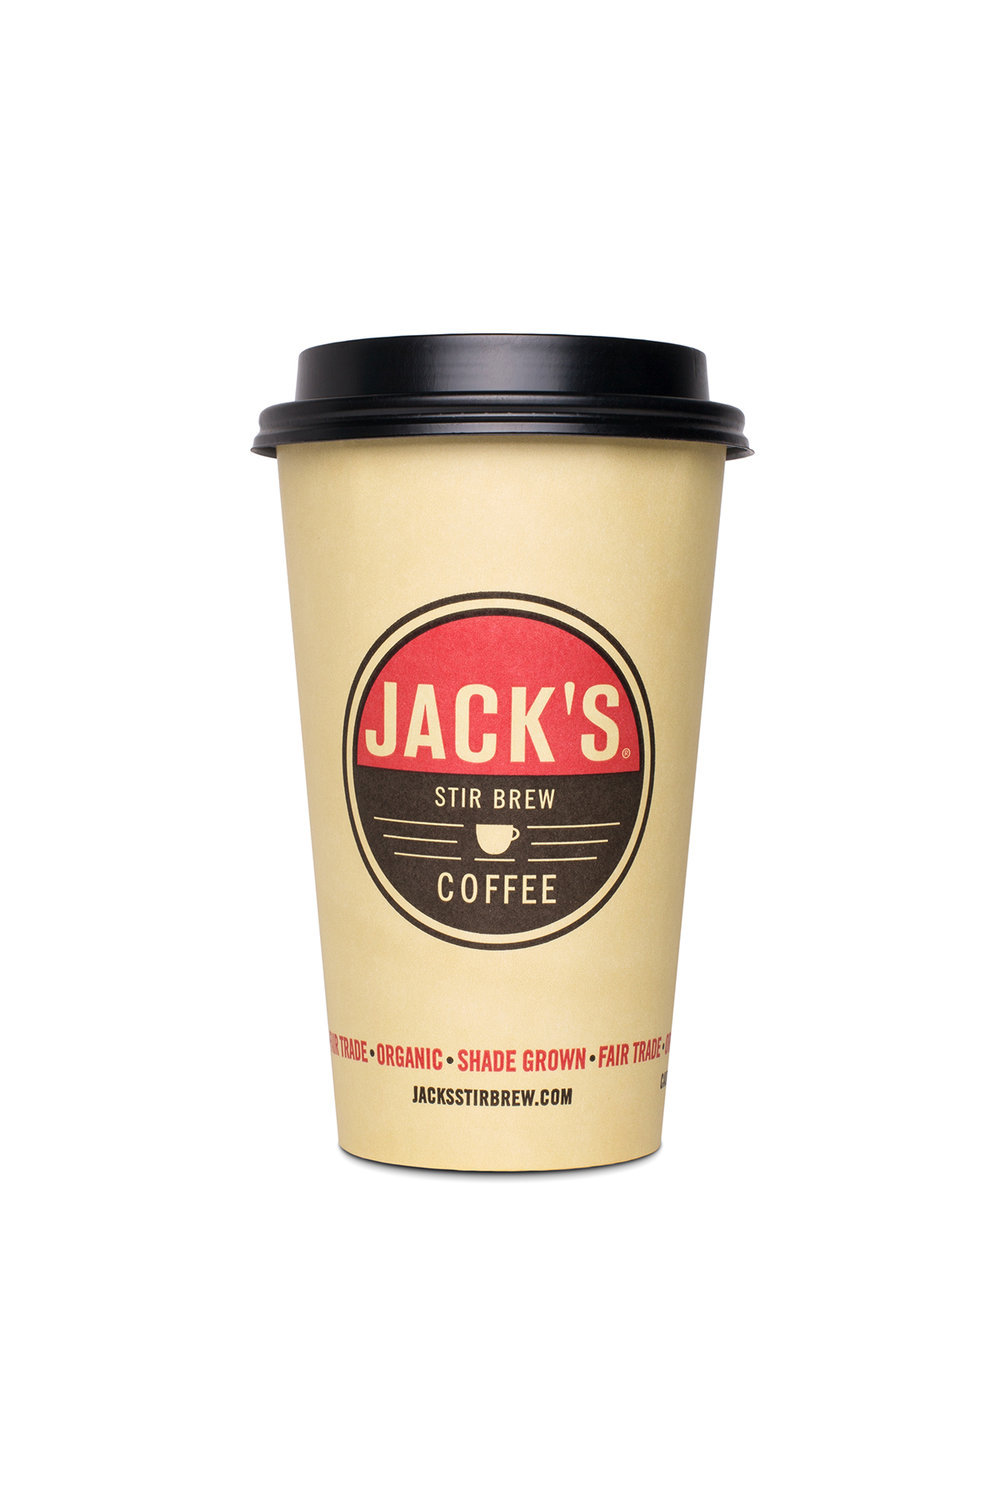 Jacks-Tall_Cup_with_Lid-2.jpg